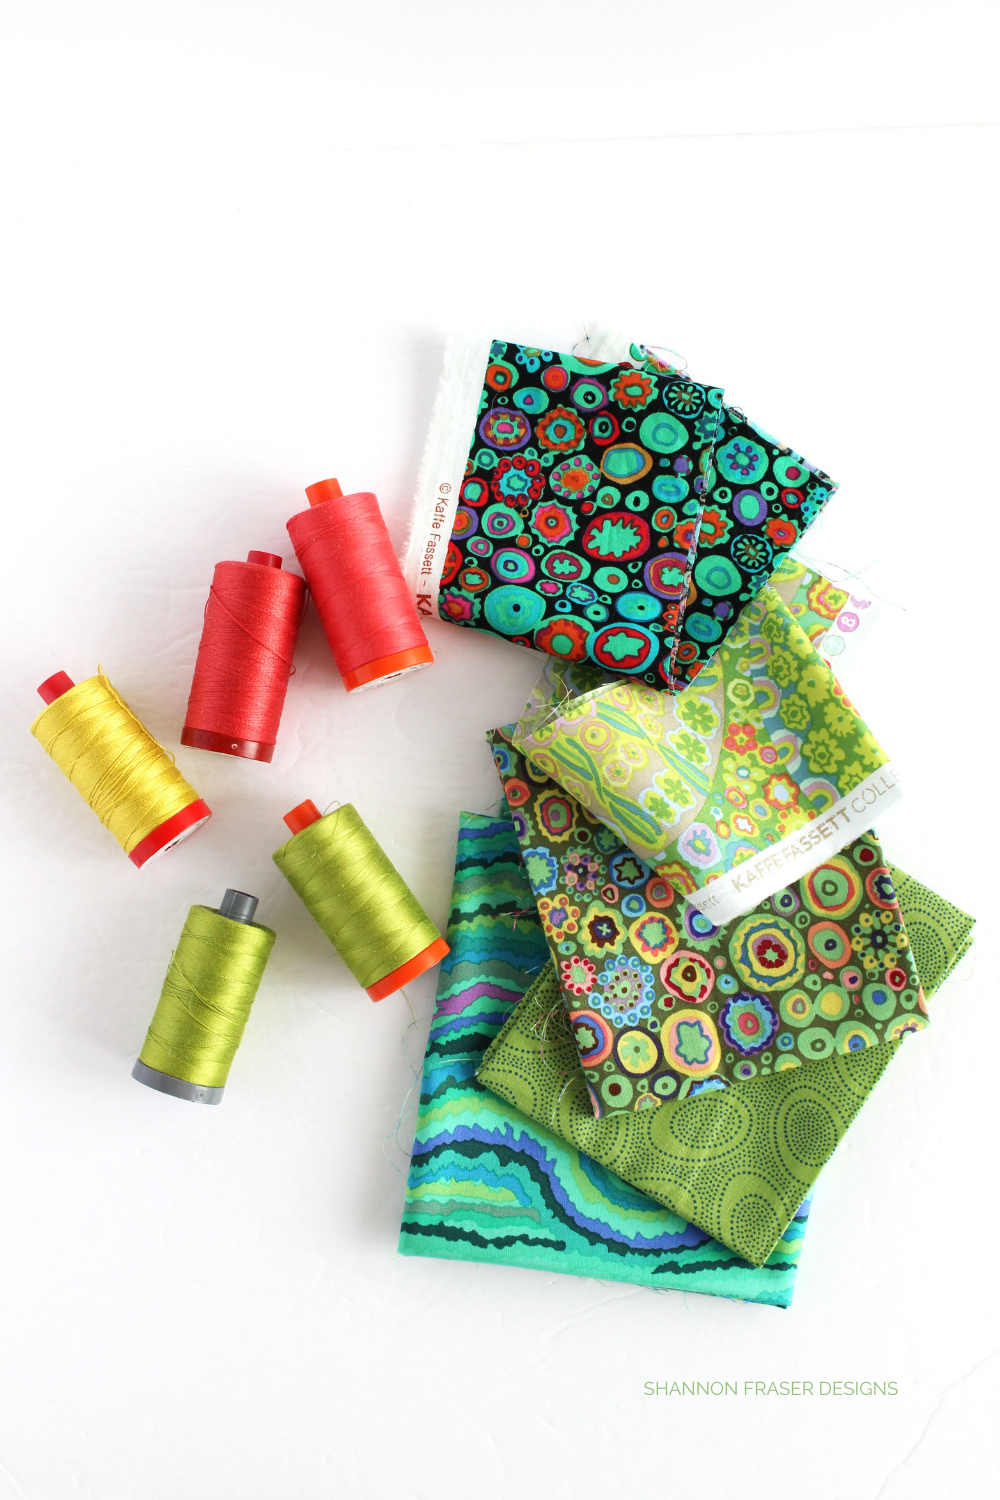 Kaffe Fassett fat quarters I received for the Aurifil Artisan April Challenge and the threads I paired with the modern needle turn appliqué wall hanging I quilted up #kaffefassett